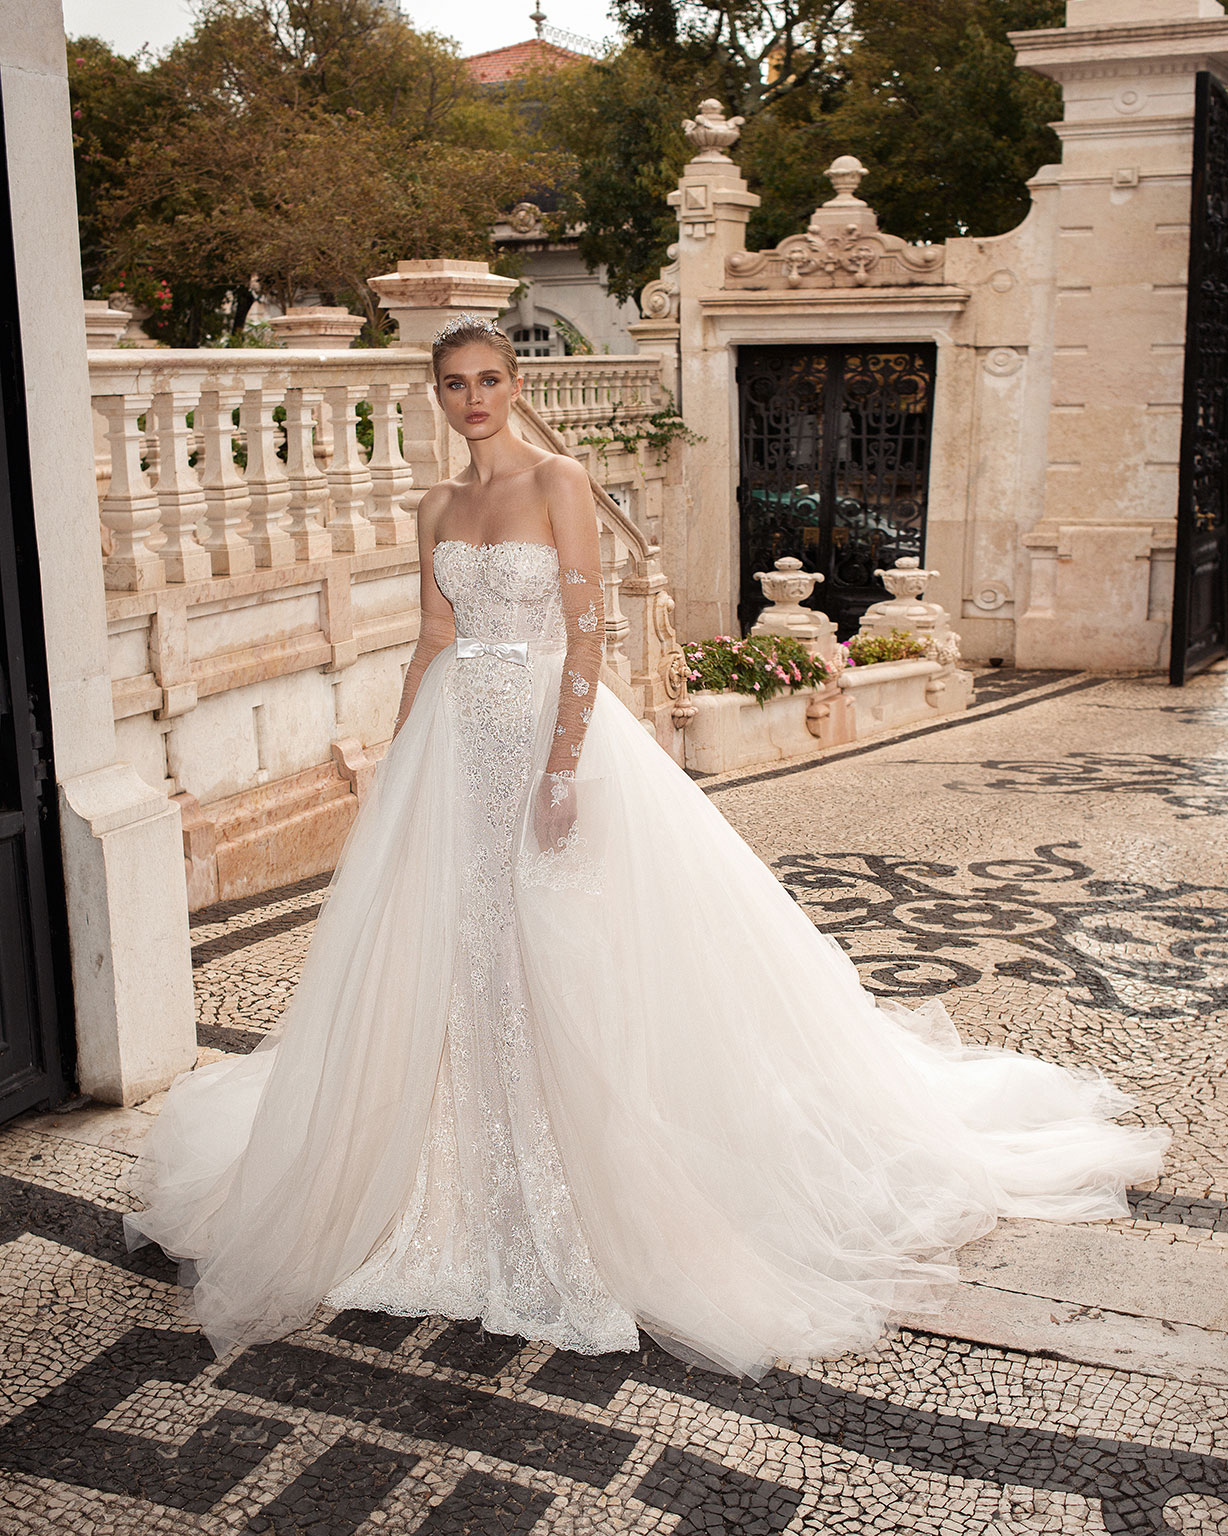 Galia Lahav strapless wedding dress with overskirt and bow detail in front